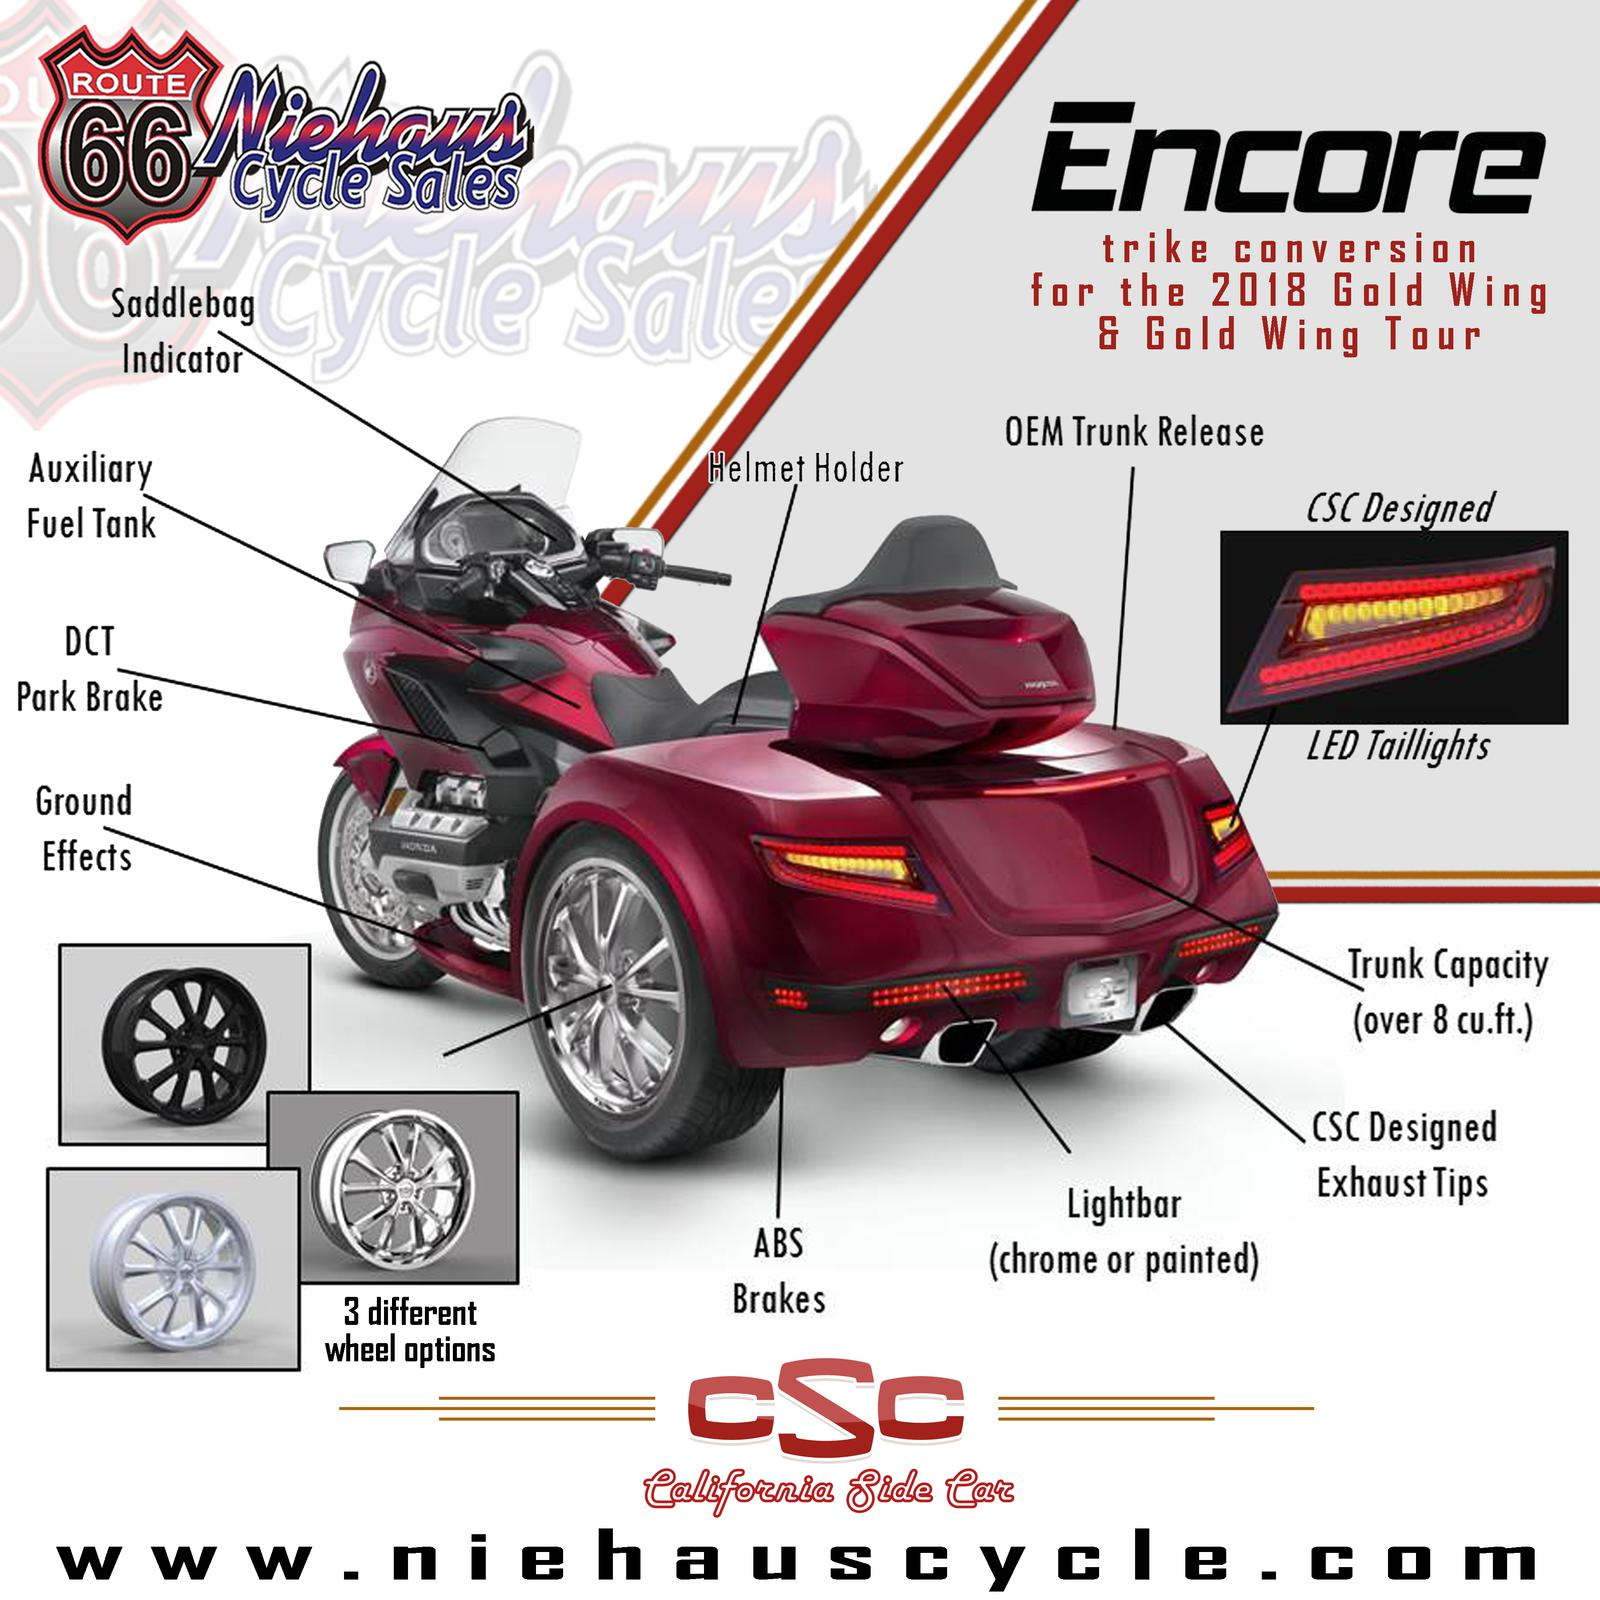 2018 Gold Wing Trikes Niehaus Cycle Sales Litchfield Il 217 324 6565